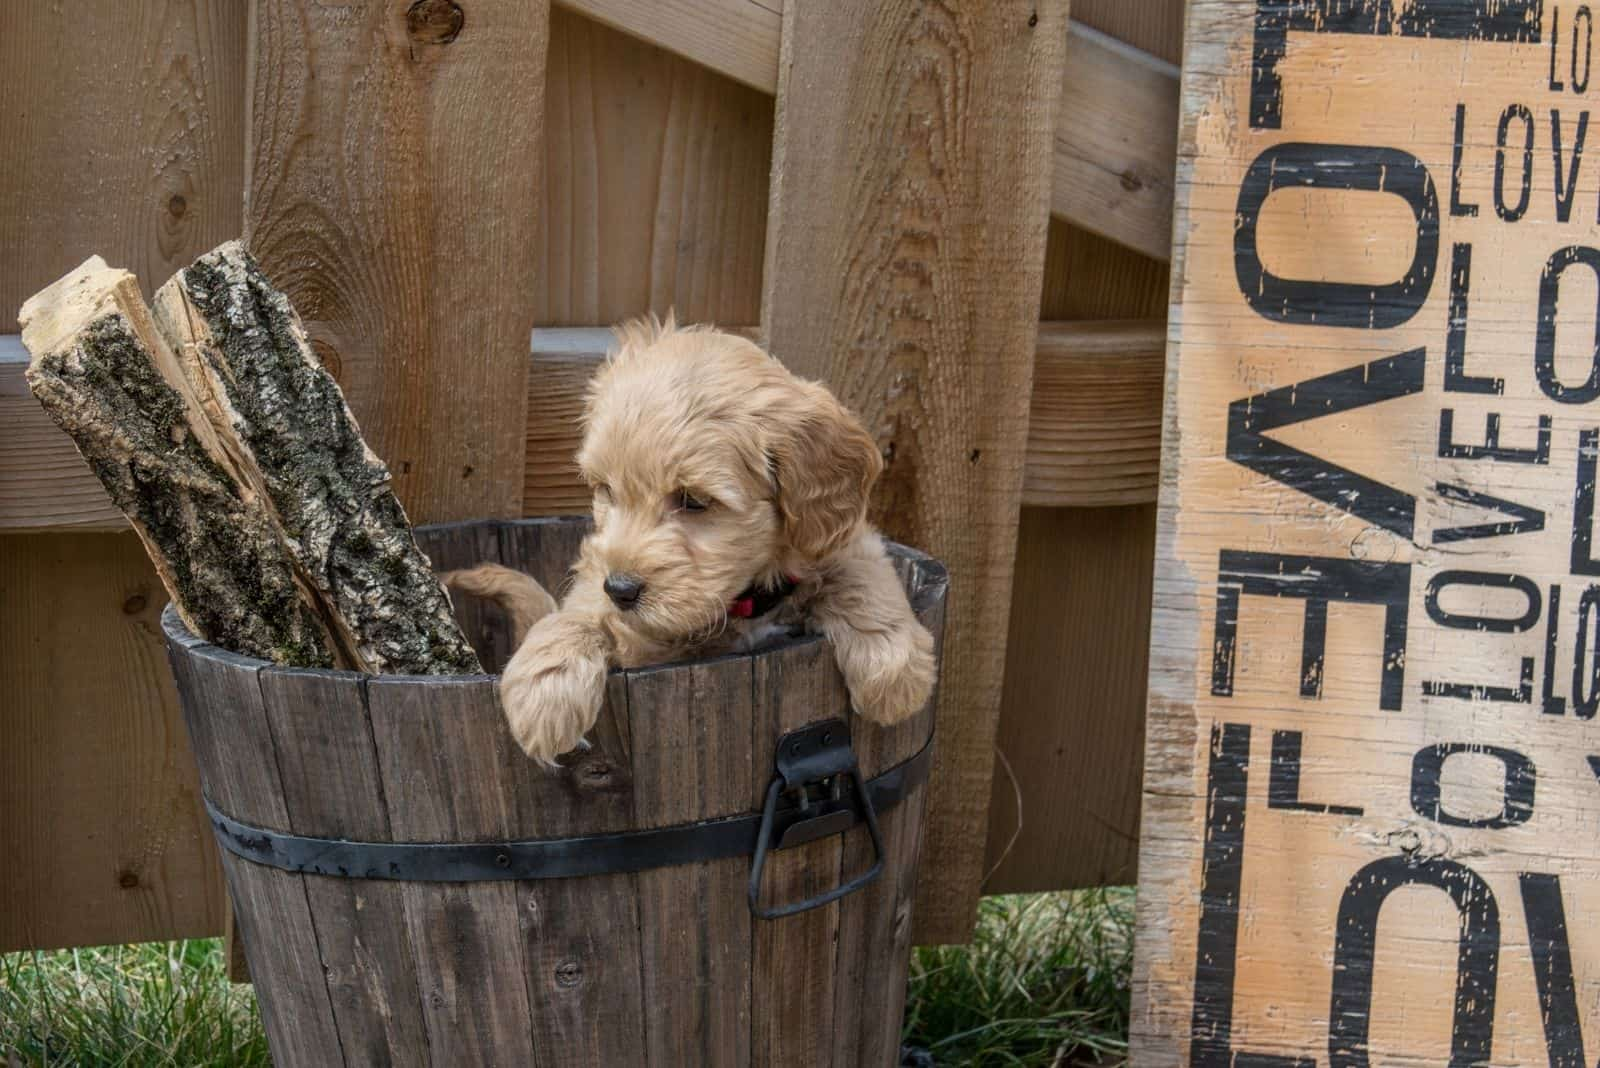 mini goldendoodle puppy inside the wooden container outdoors